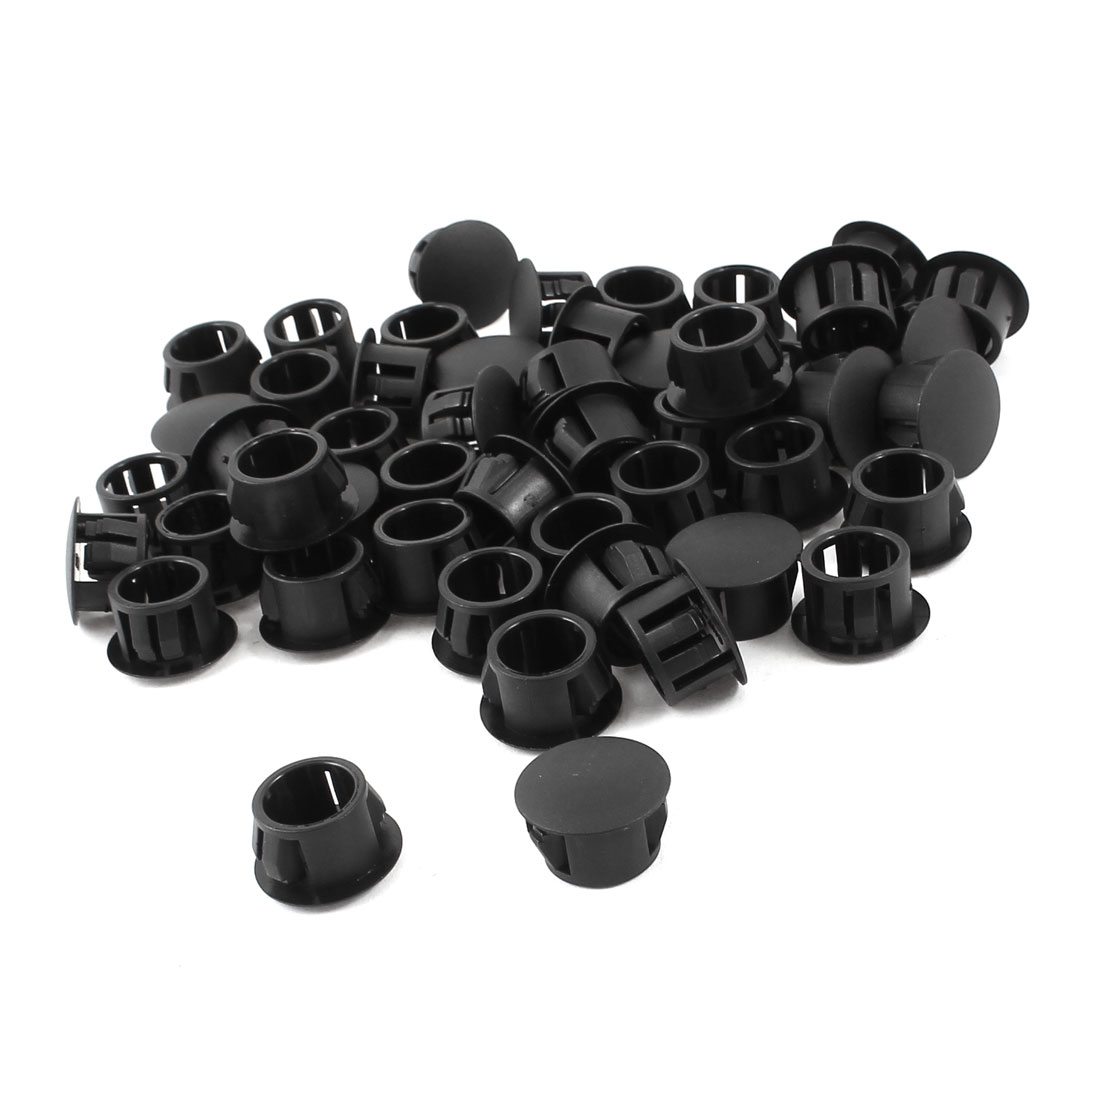 50 Pieces Black Snap in Mount Locking Hole Covers 13mmx16.5mmx10mm